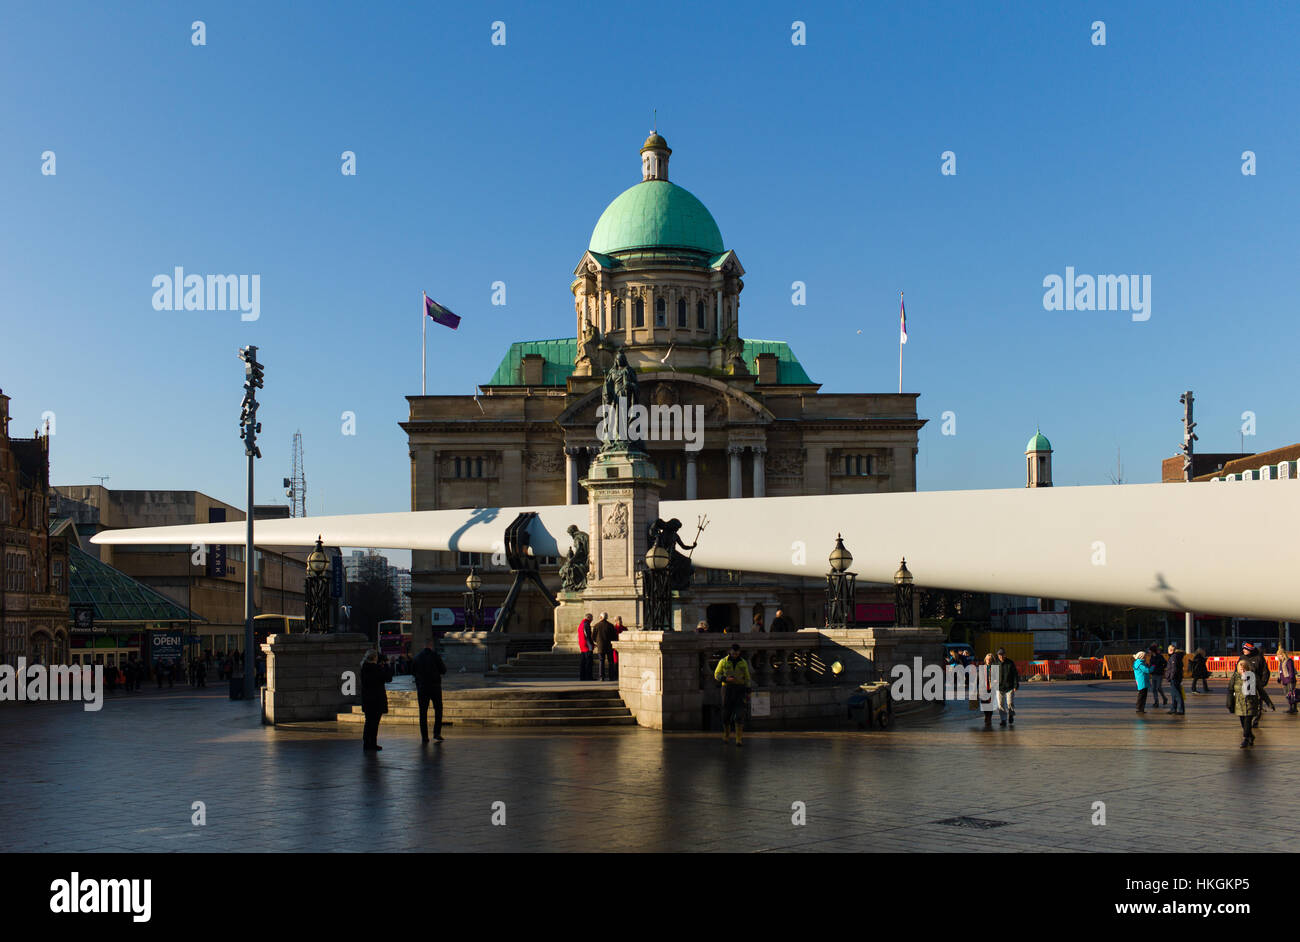 Hull City of Culture The blade  by nayan kulkarni in City Square, the sail of a windmill by Siemens - Stock Image